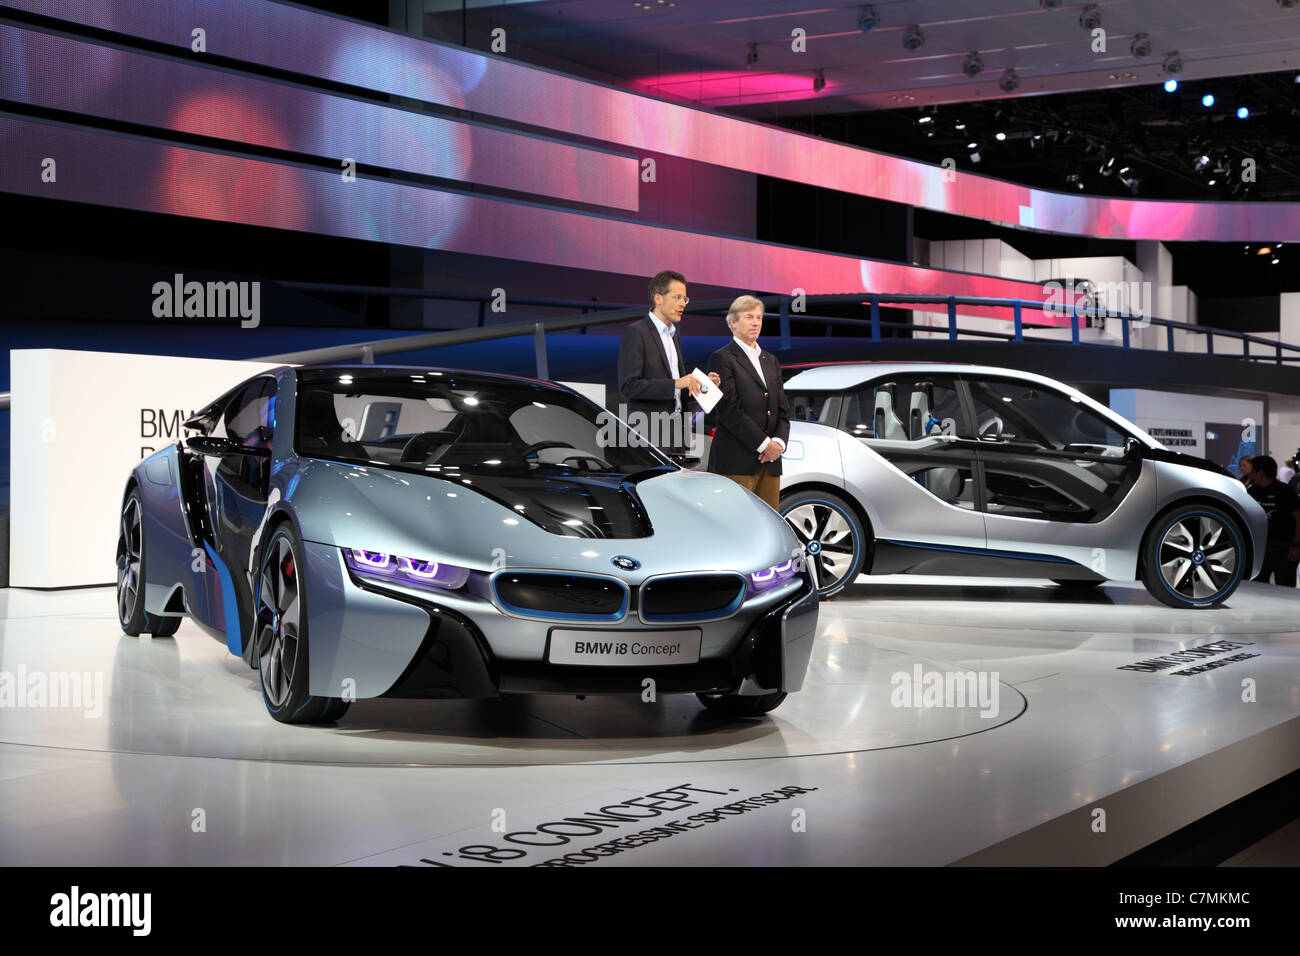 BMW Electric Concept Cars I8 And I3 At The 64th IAA (Internationale  Automobil Ausstellung